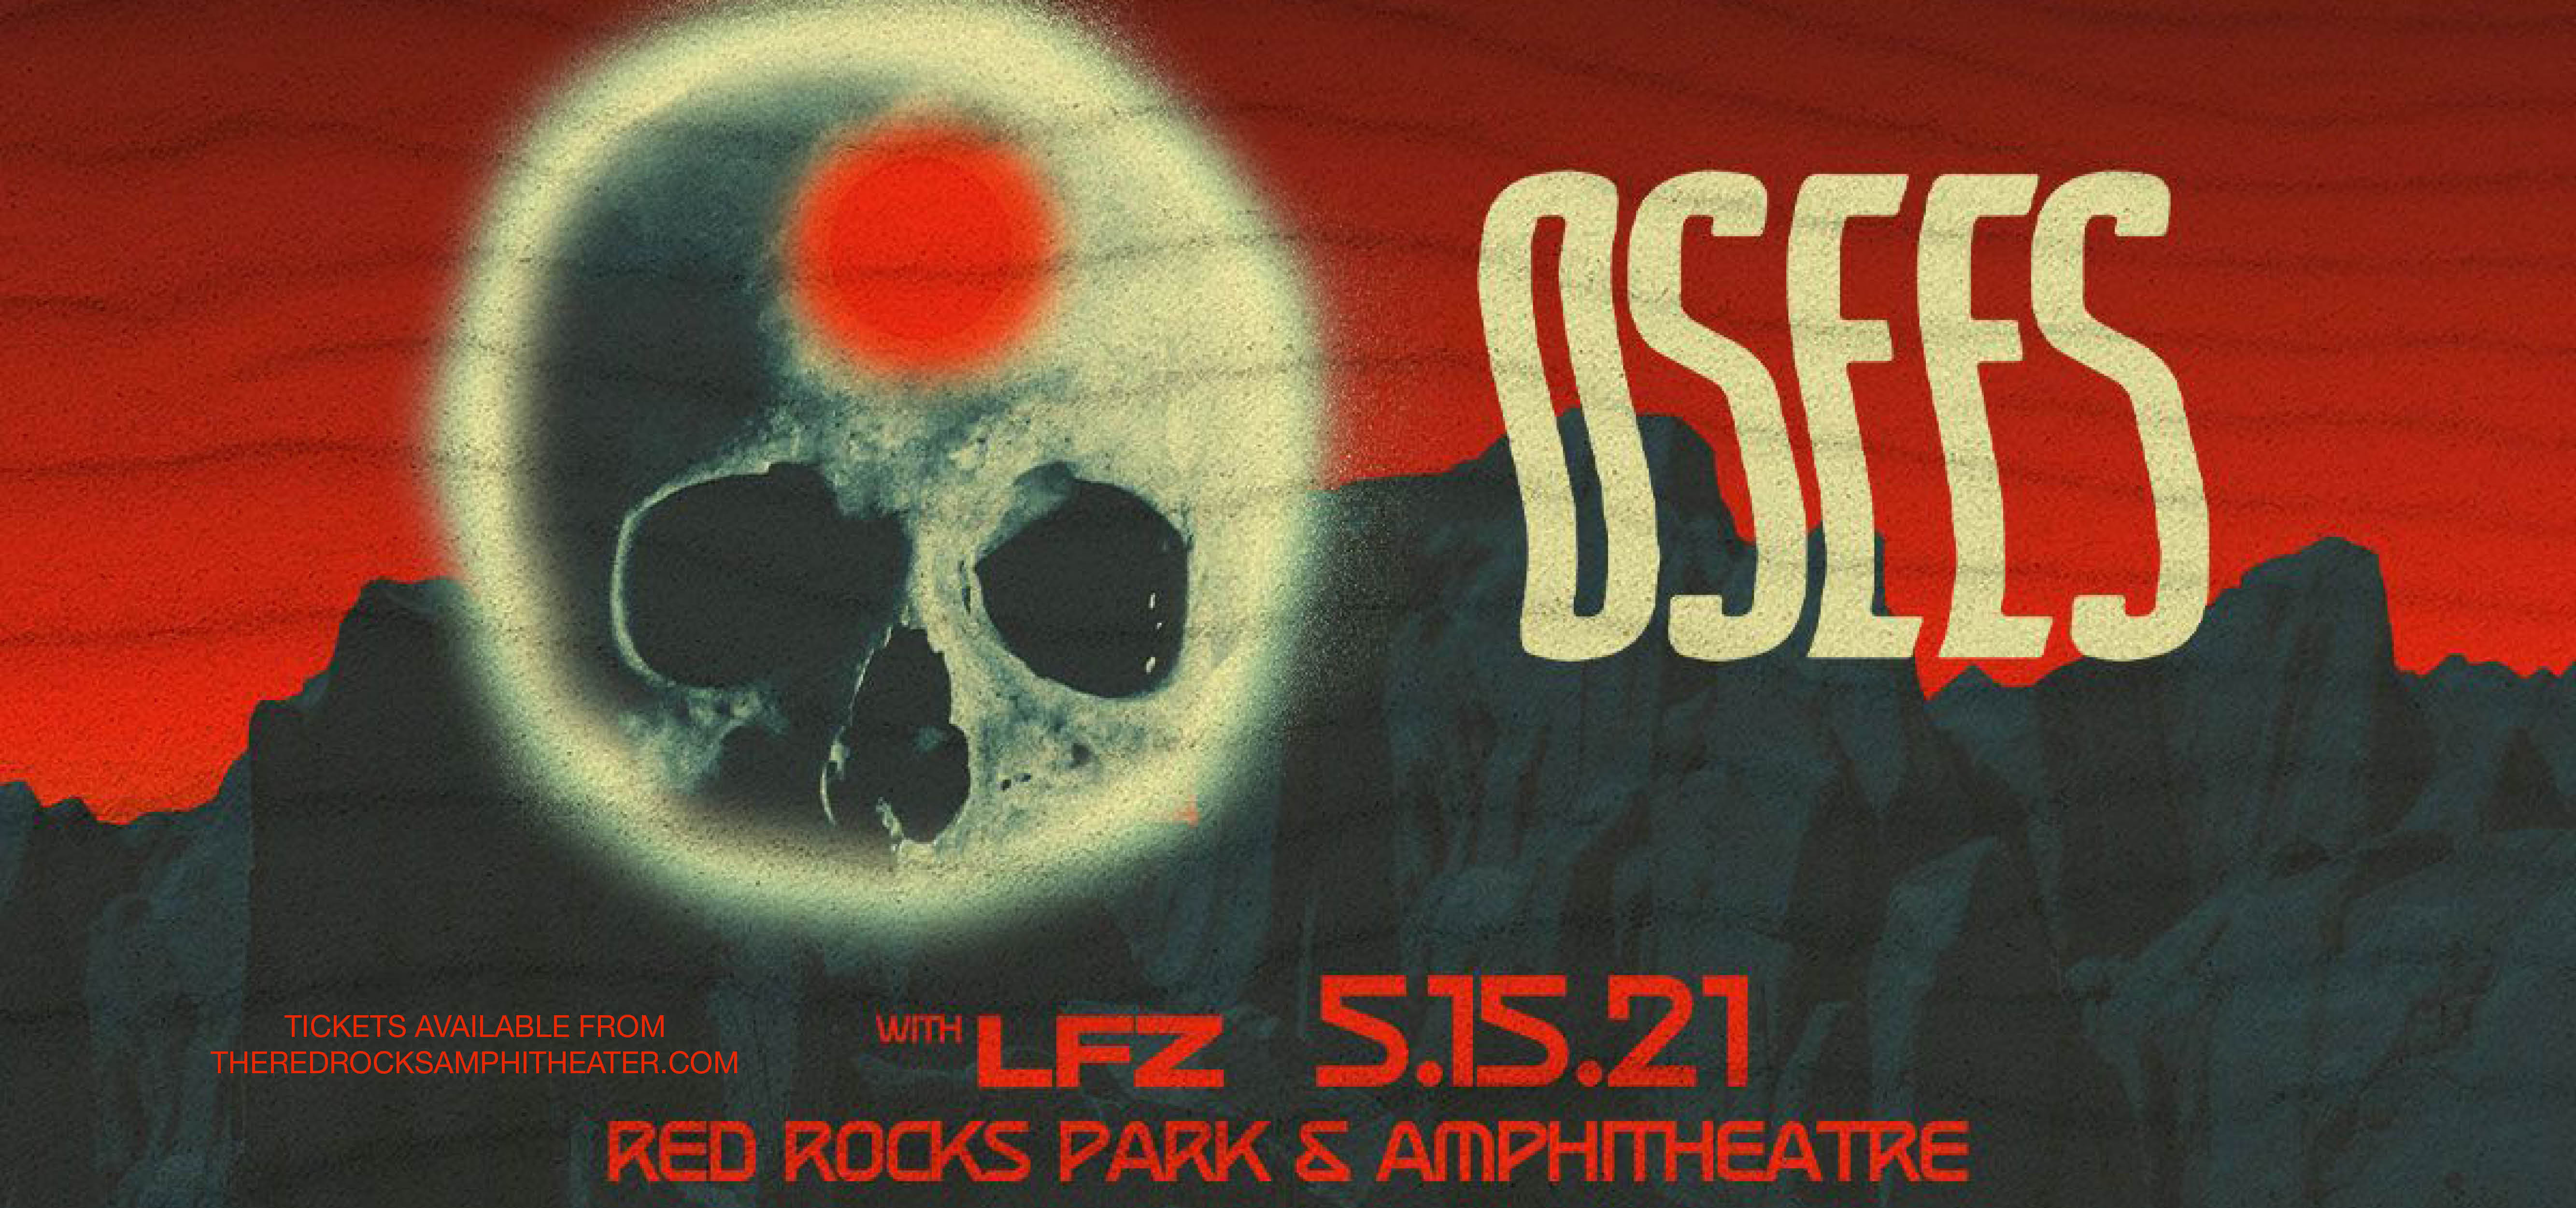 Osees at Red Rocks Amphitheater